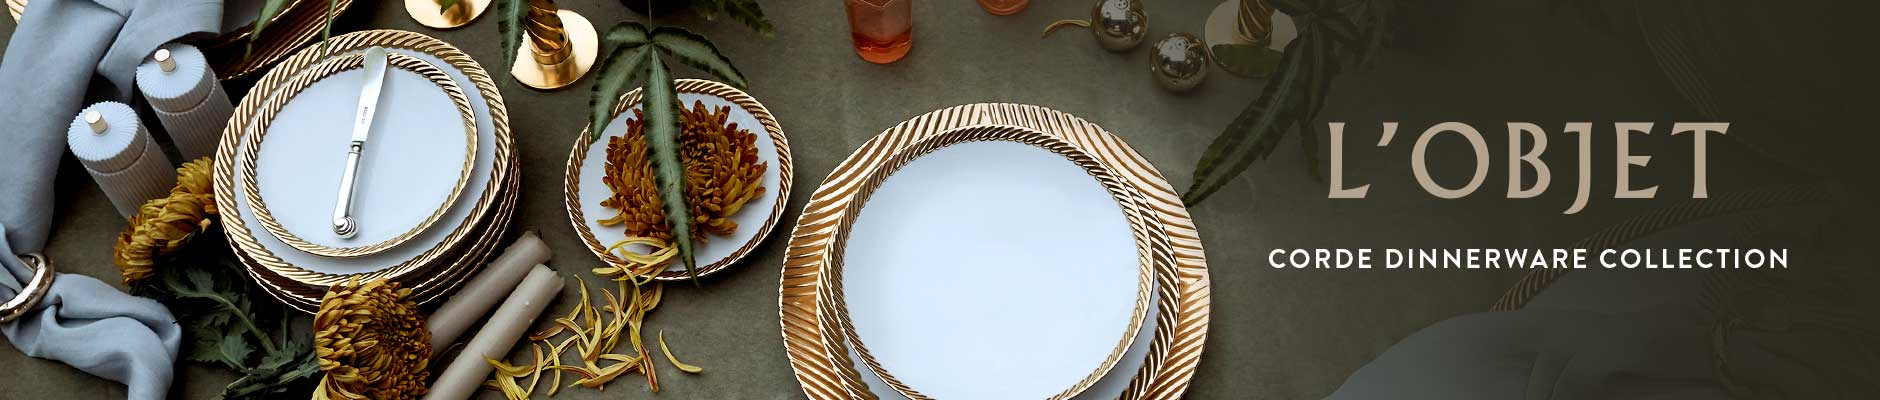 L'Objet - Corde Dinnerware Collection